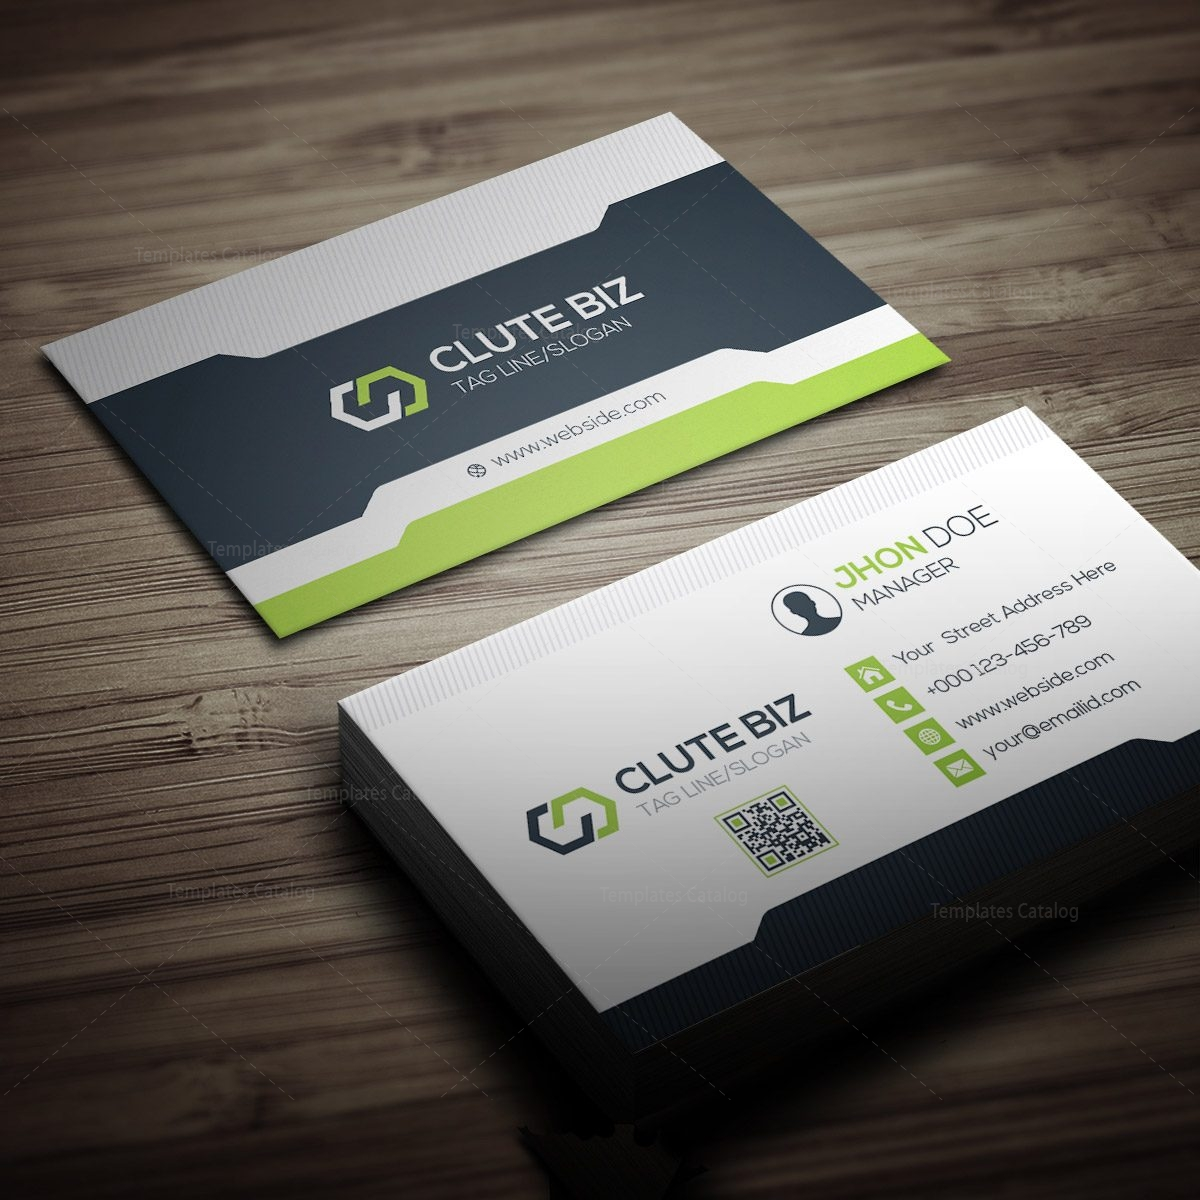 print business cards at home free templates image